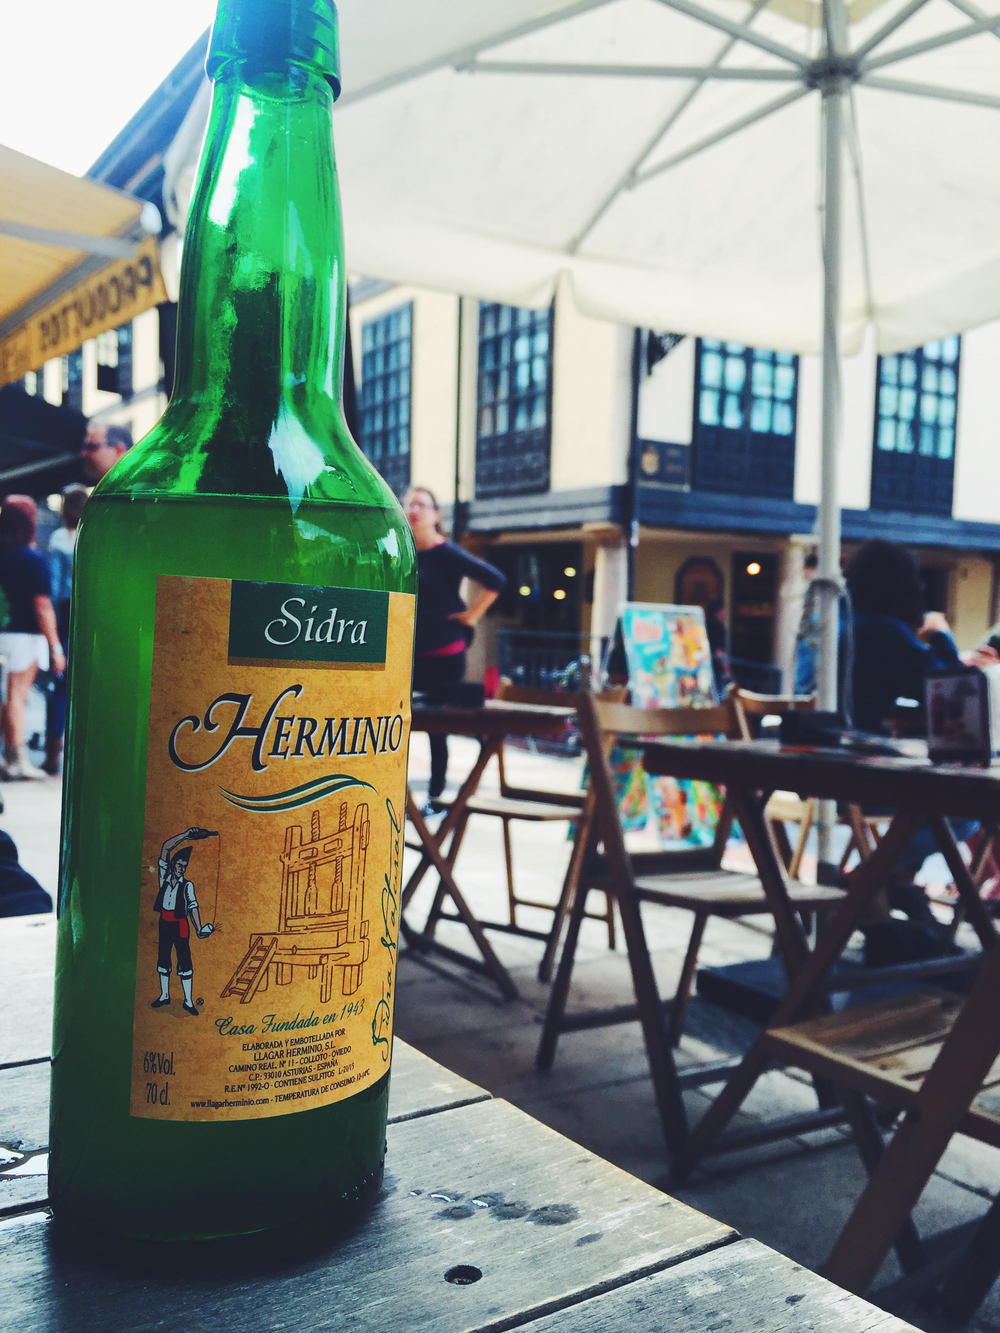 Sidra in Spain. A tradition you must experience when traveling. Woody Allen's favorite city in Europe. Traveling like a local with a Photo Travel Guide.